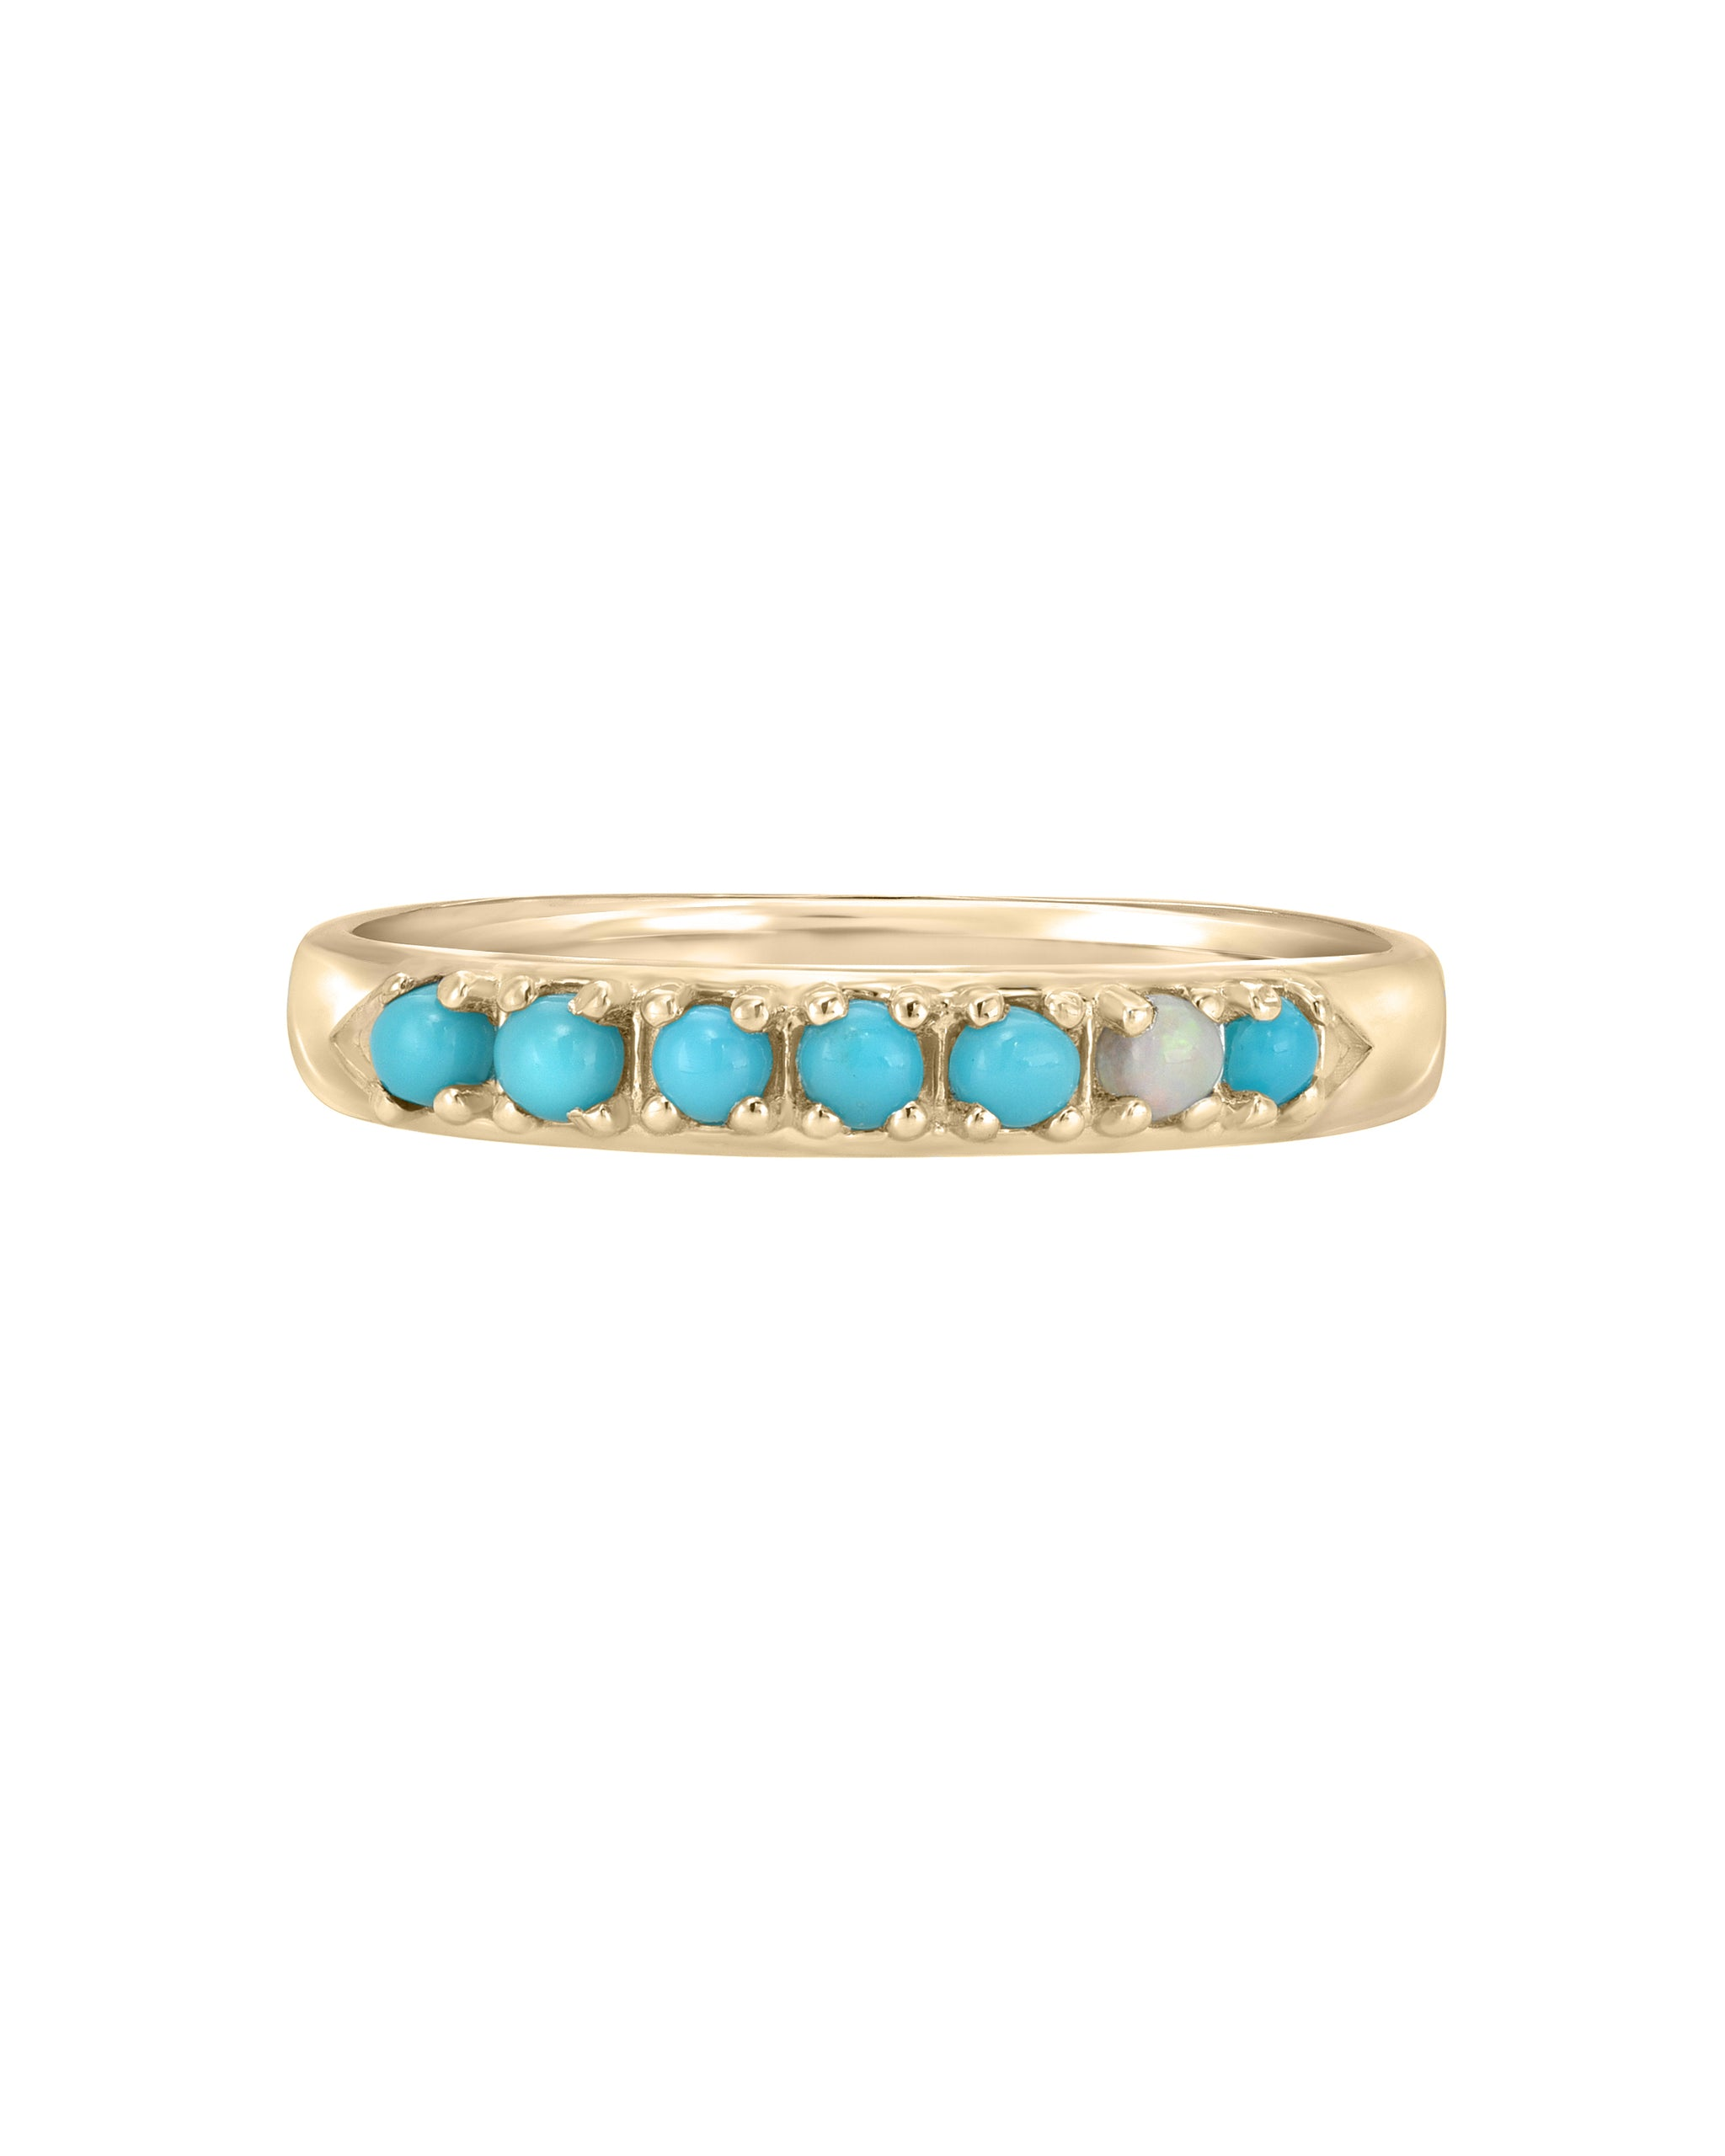 Wylde Ring, Turquoise and Opal 14k yellow gold chevron ring, handmade by Turquoise + Tobacco in Los Angeles, California